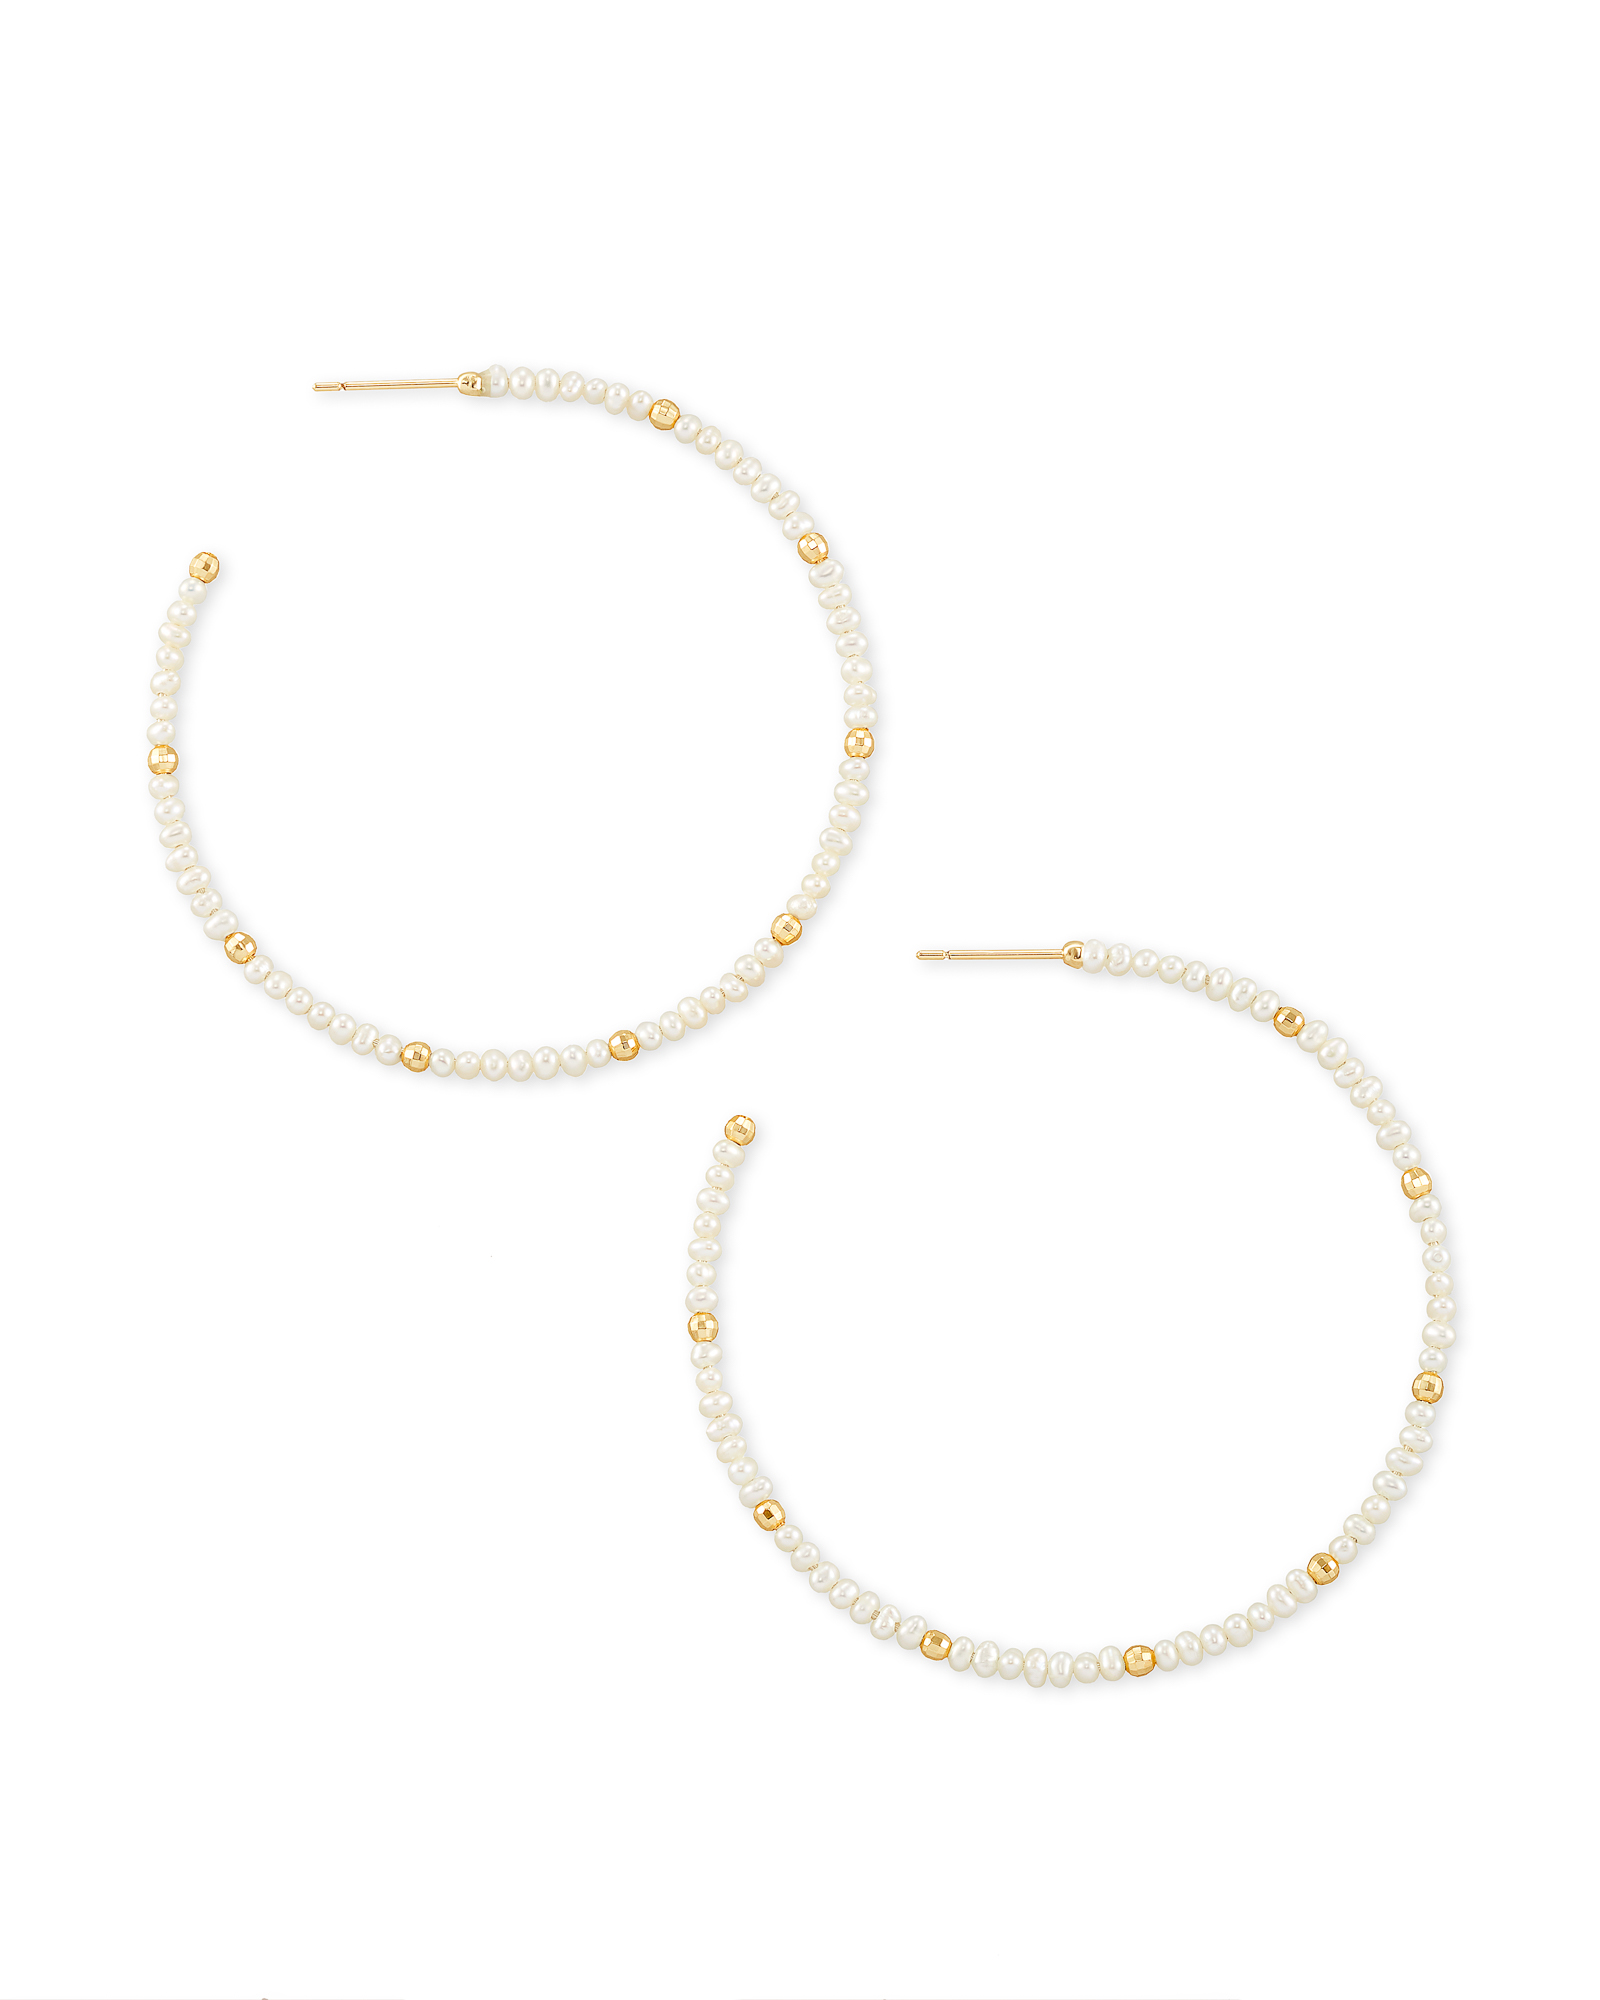 Scarlet Gold Hoop Earrings in White Pearl